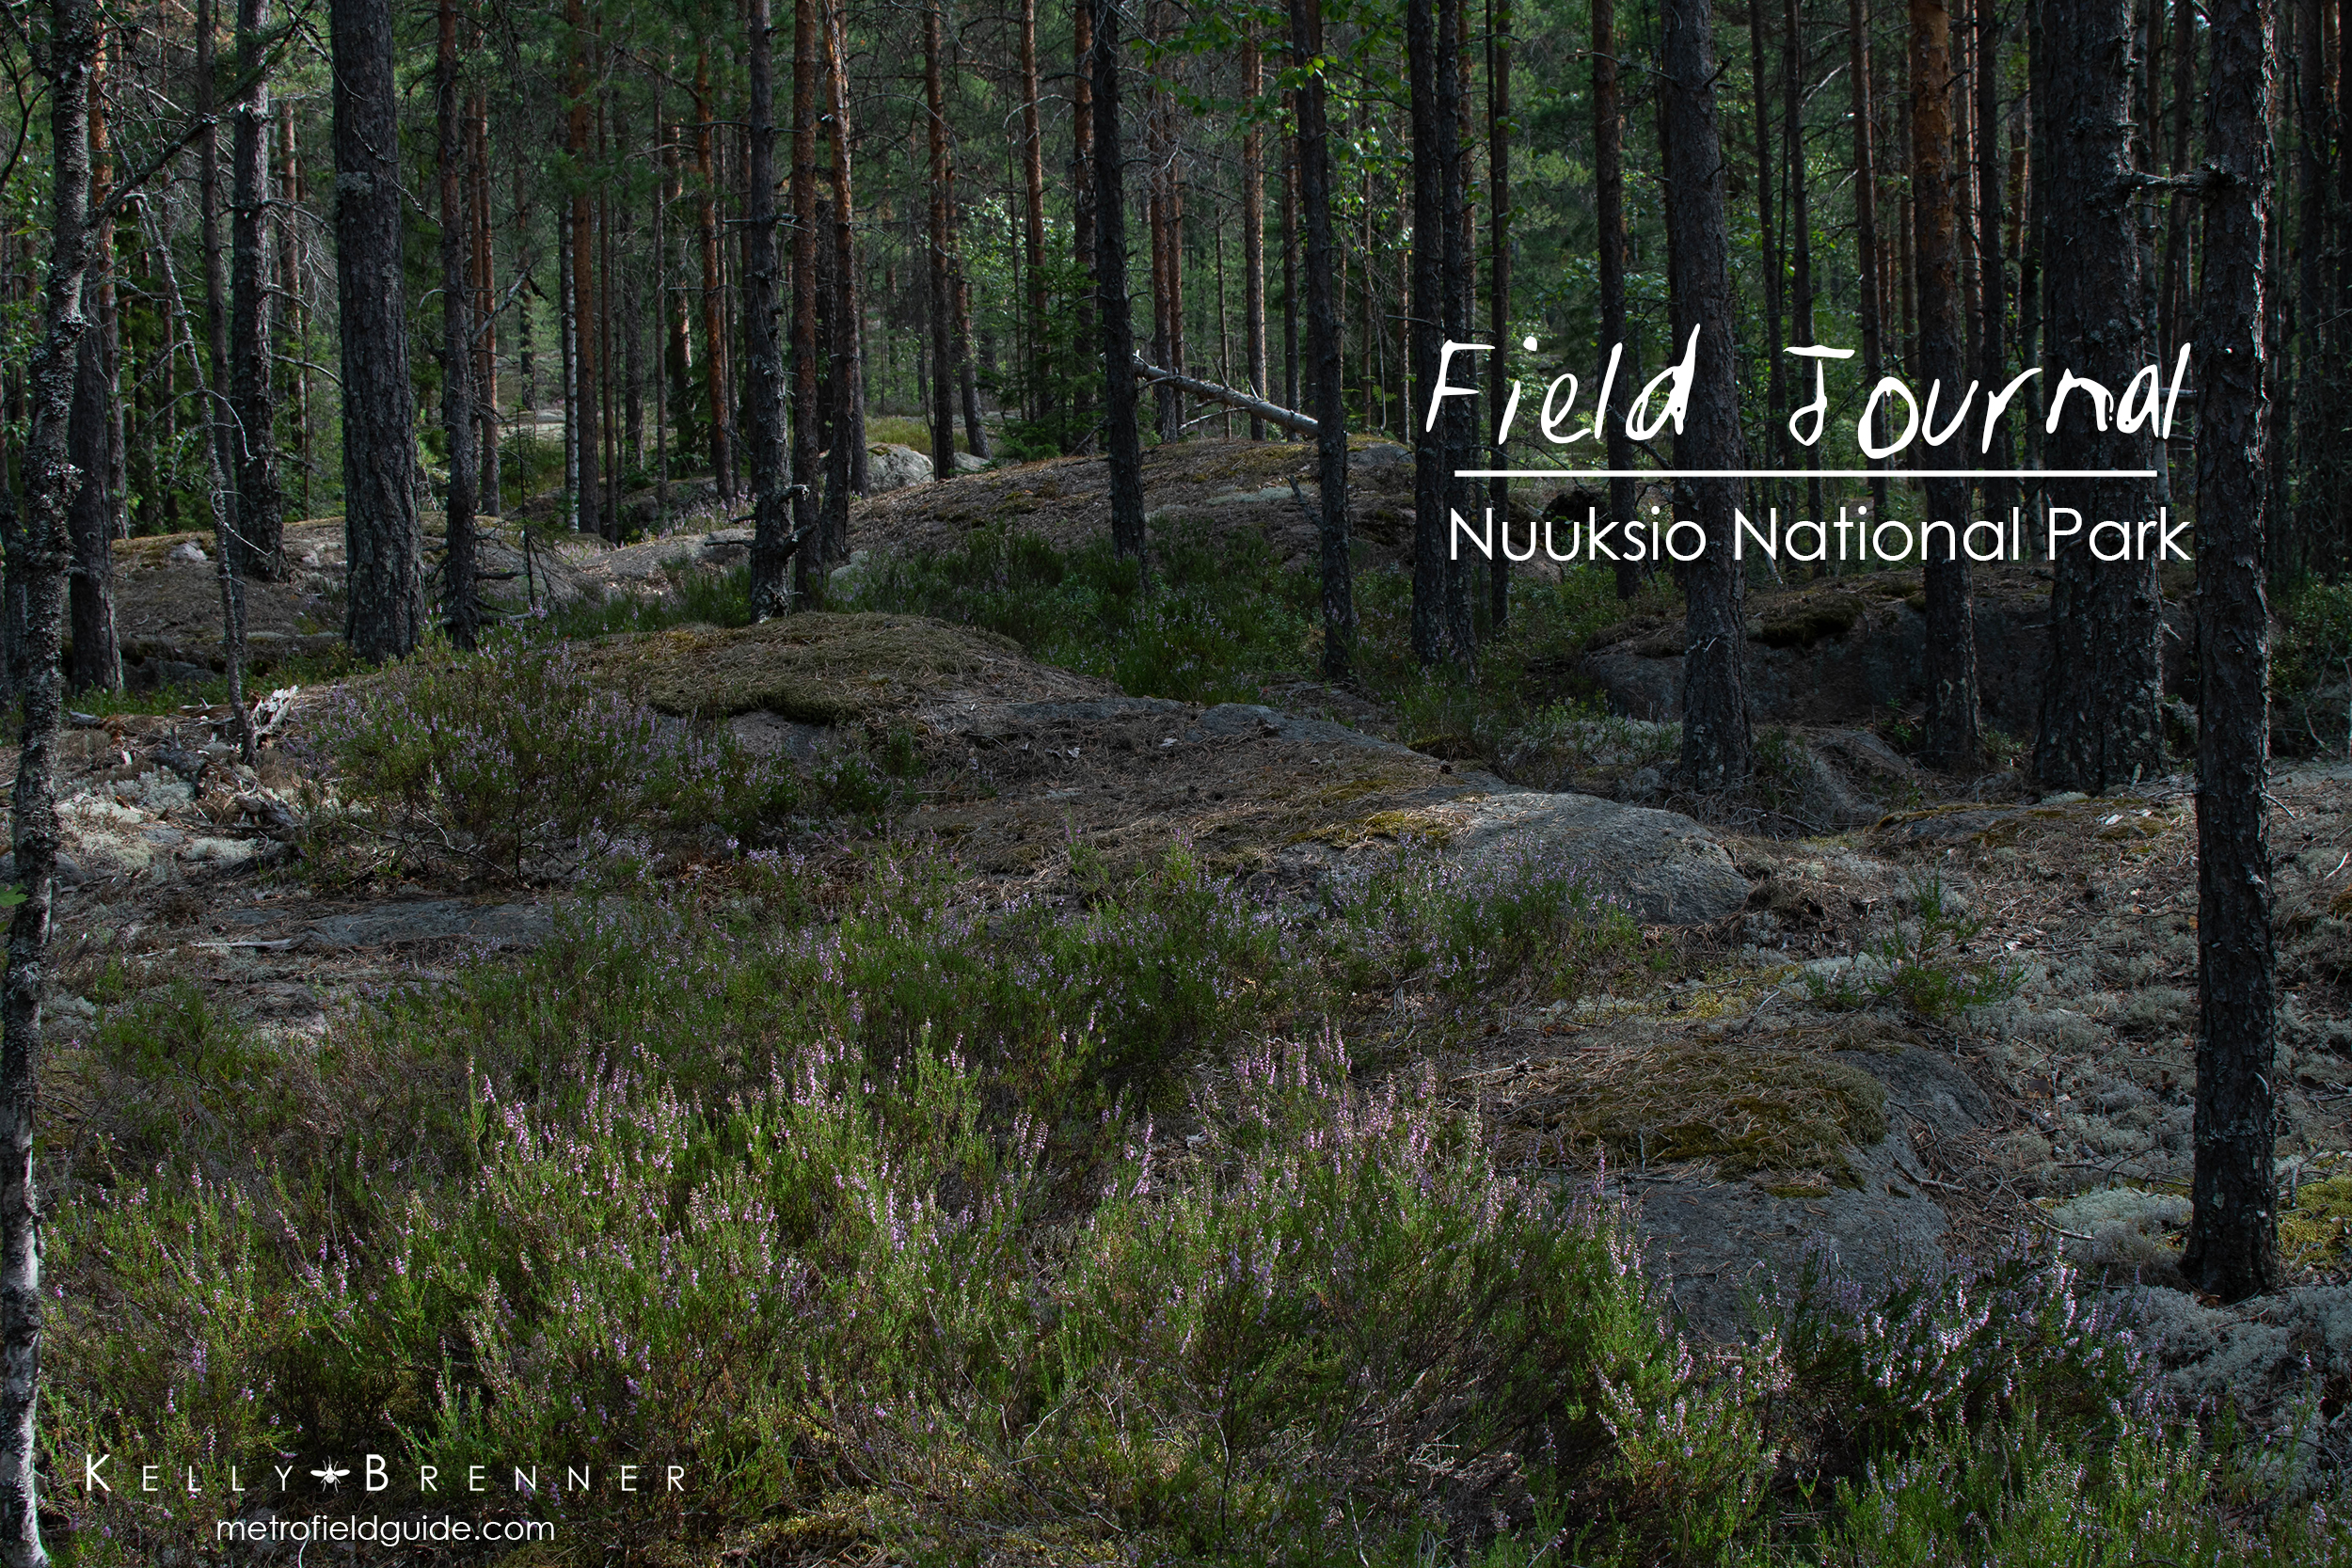 Field Journal: Nuuksio National Park